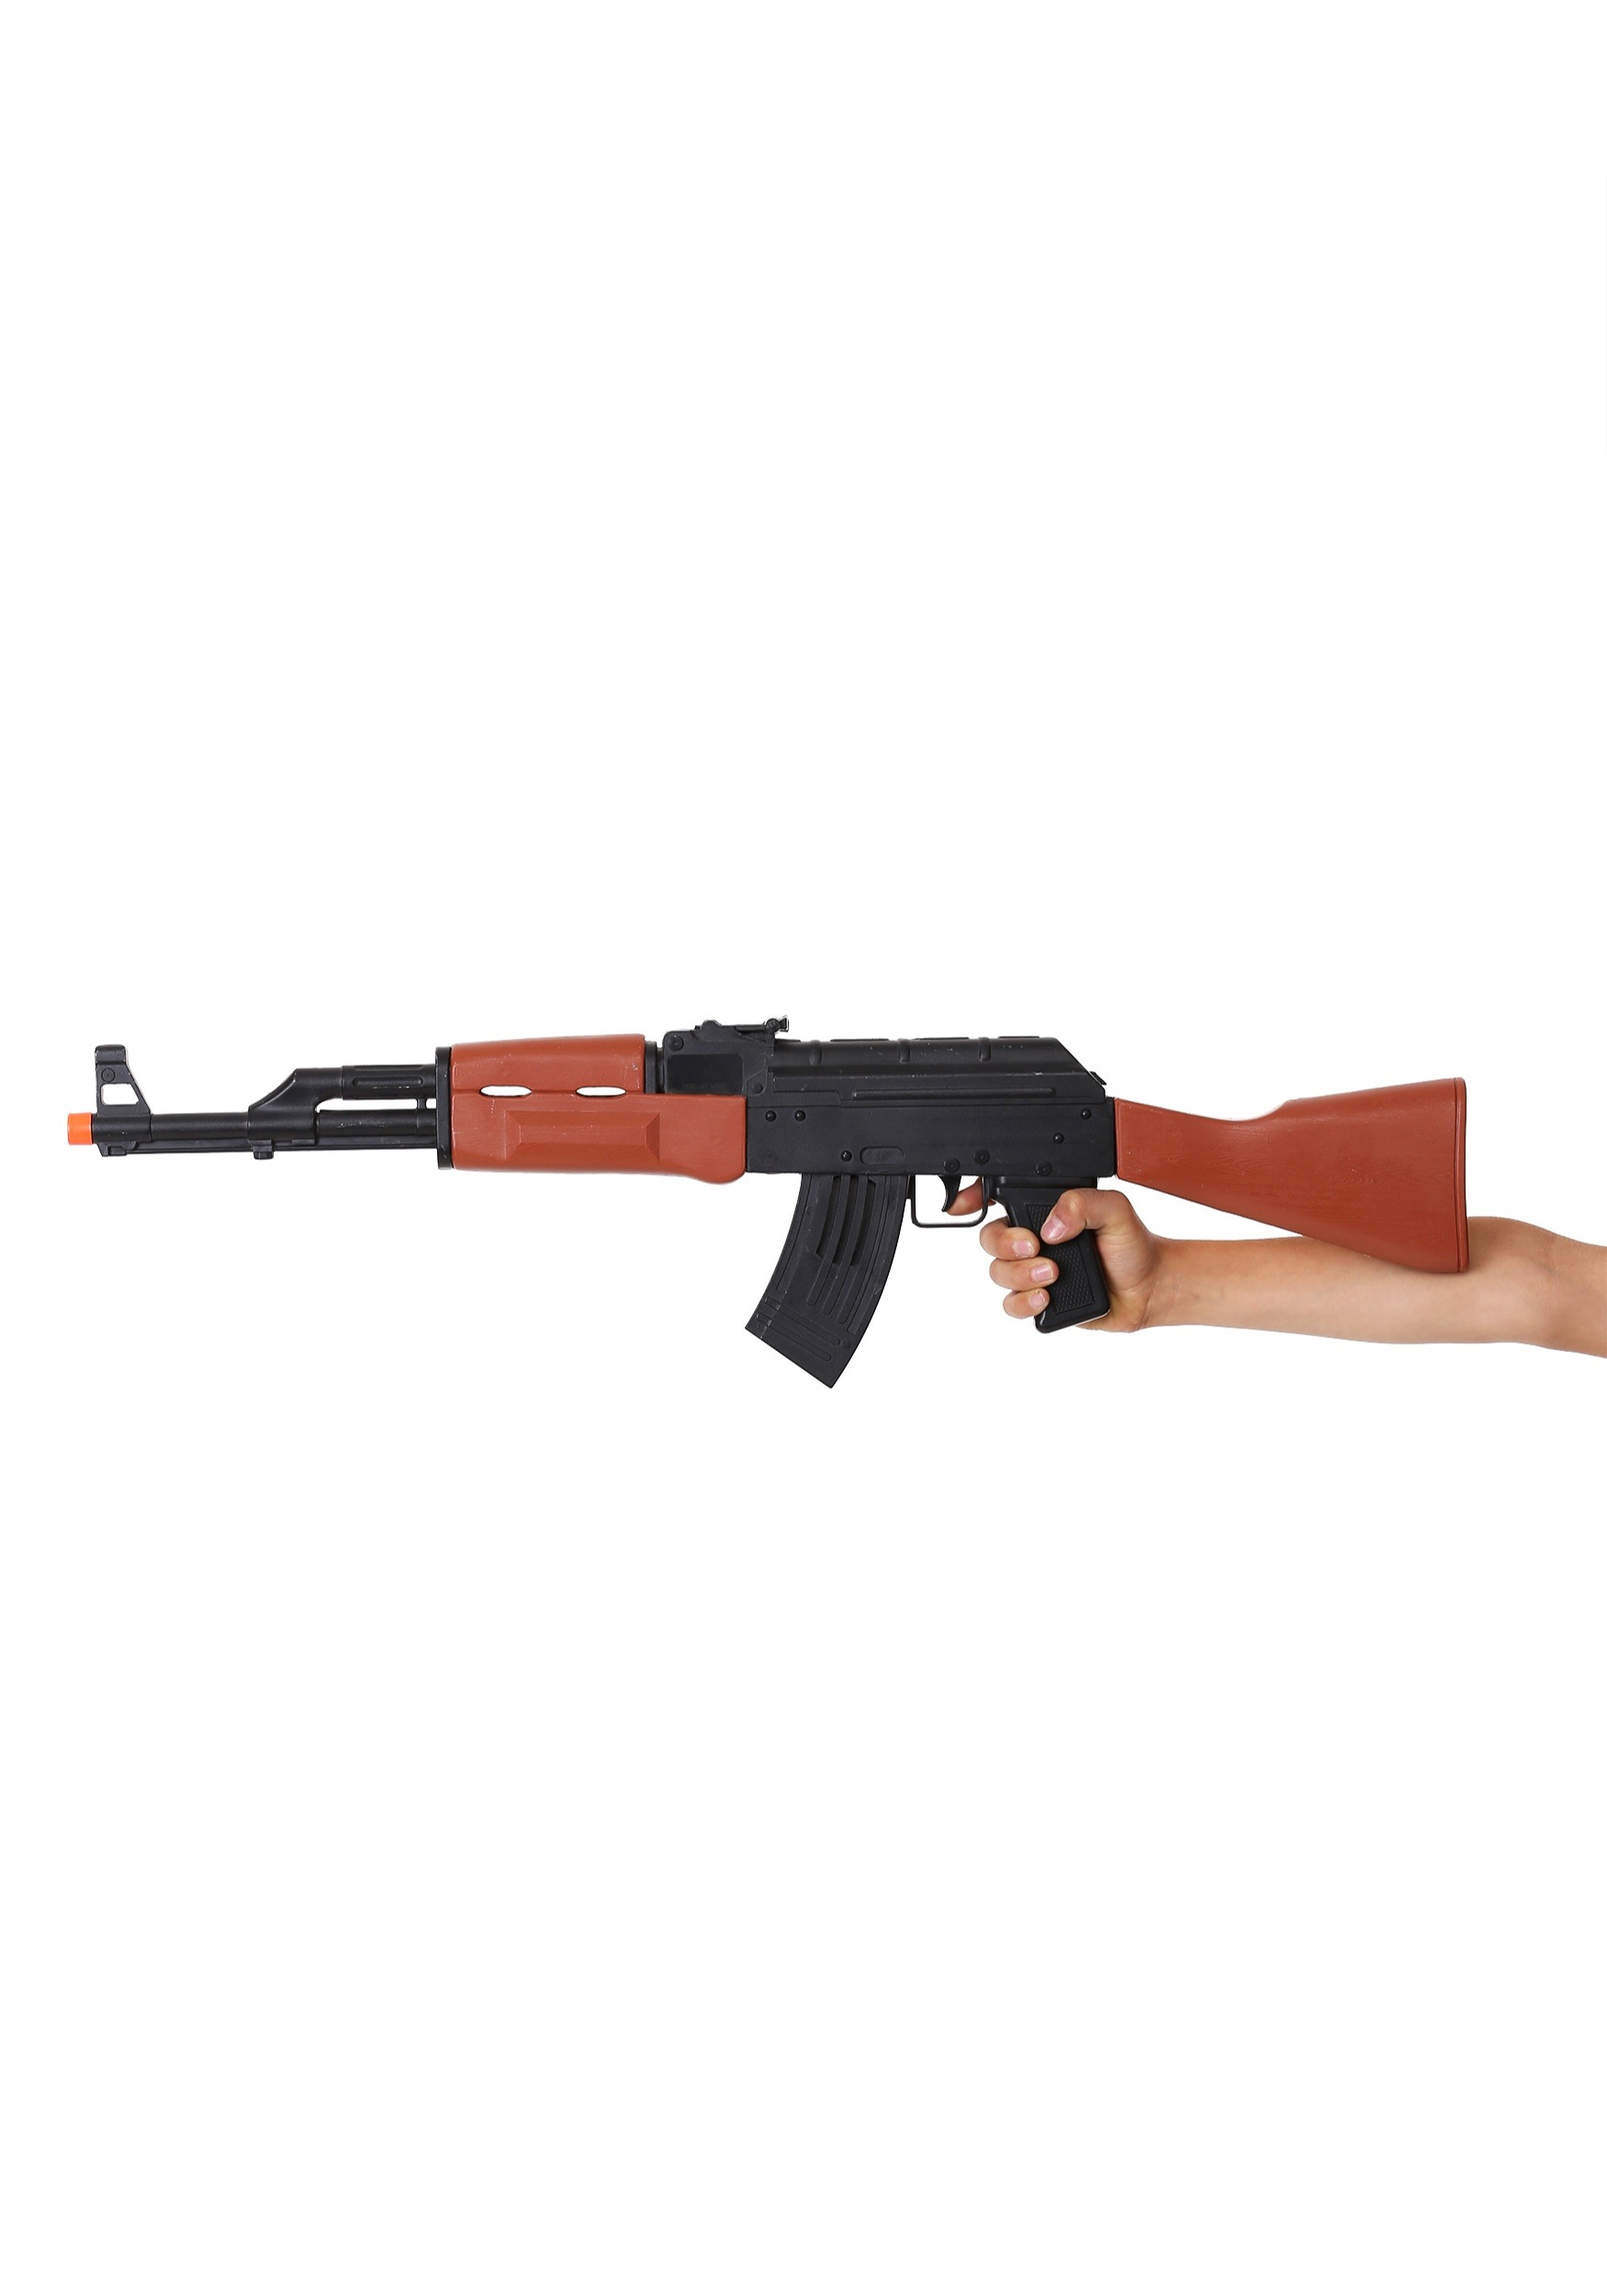 Toy AK-47 Machine Gun -Military Costume Toy Weapon Accessories